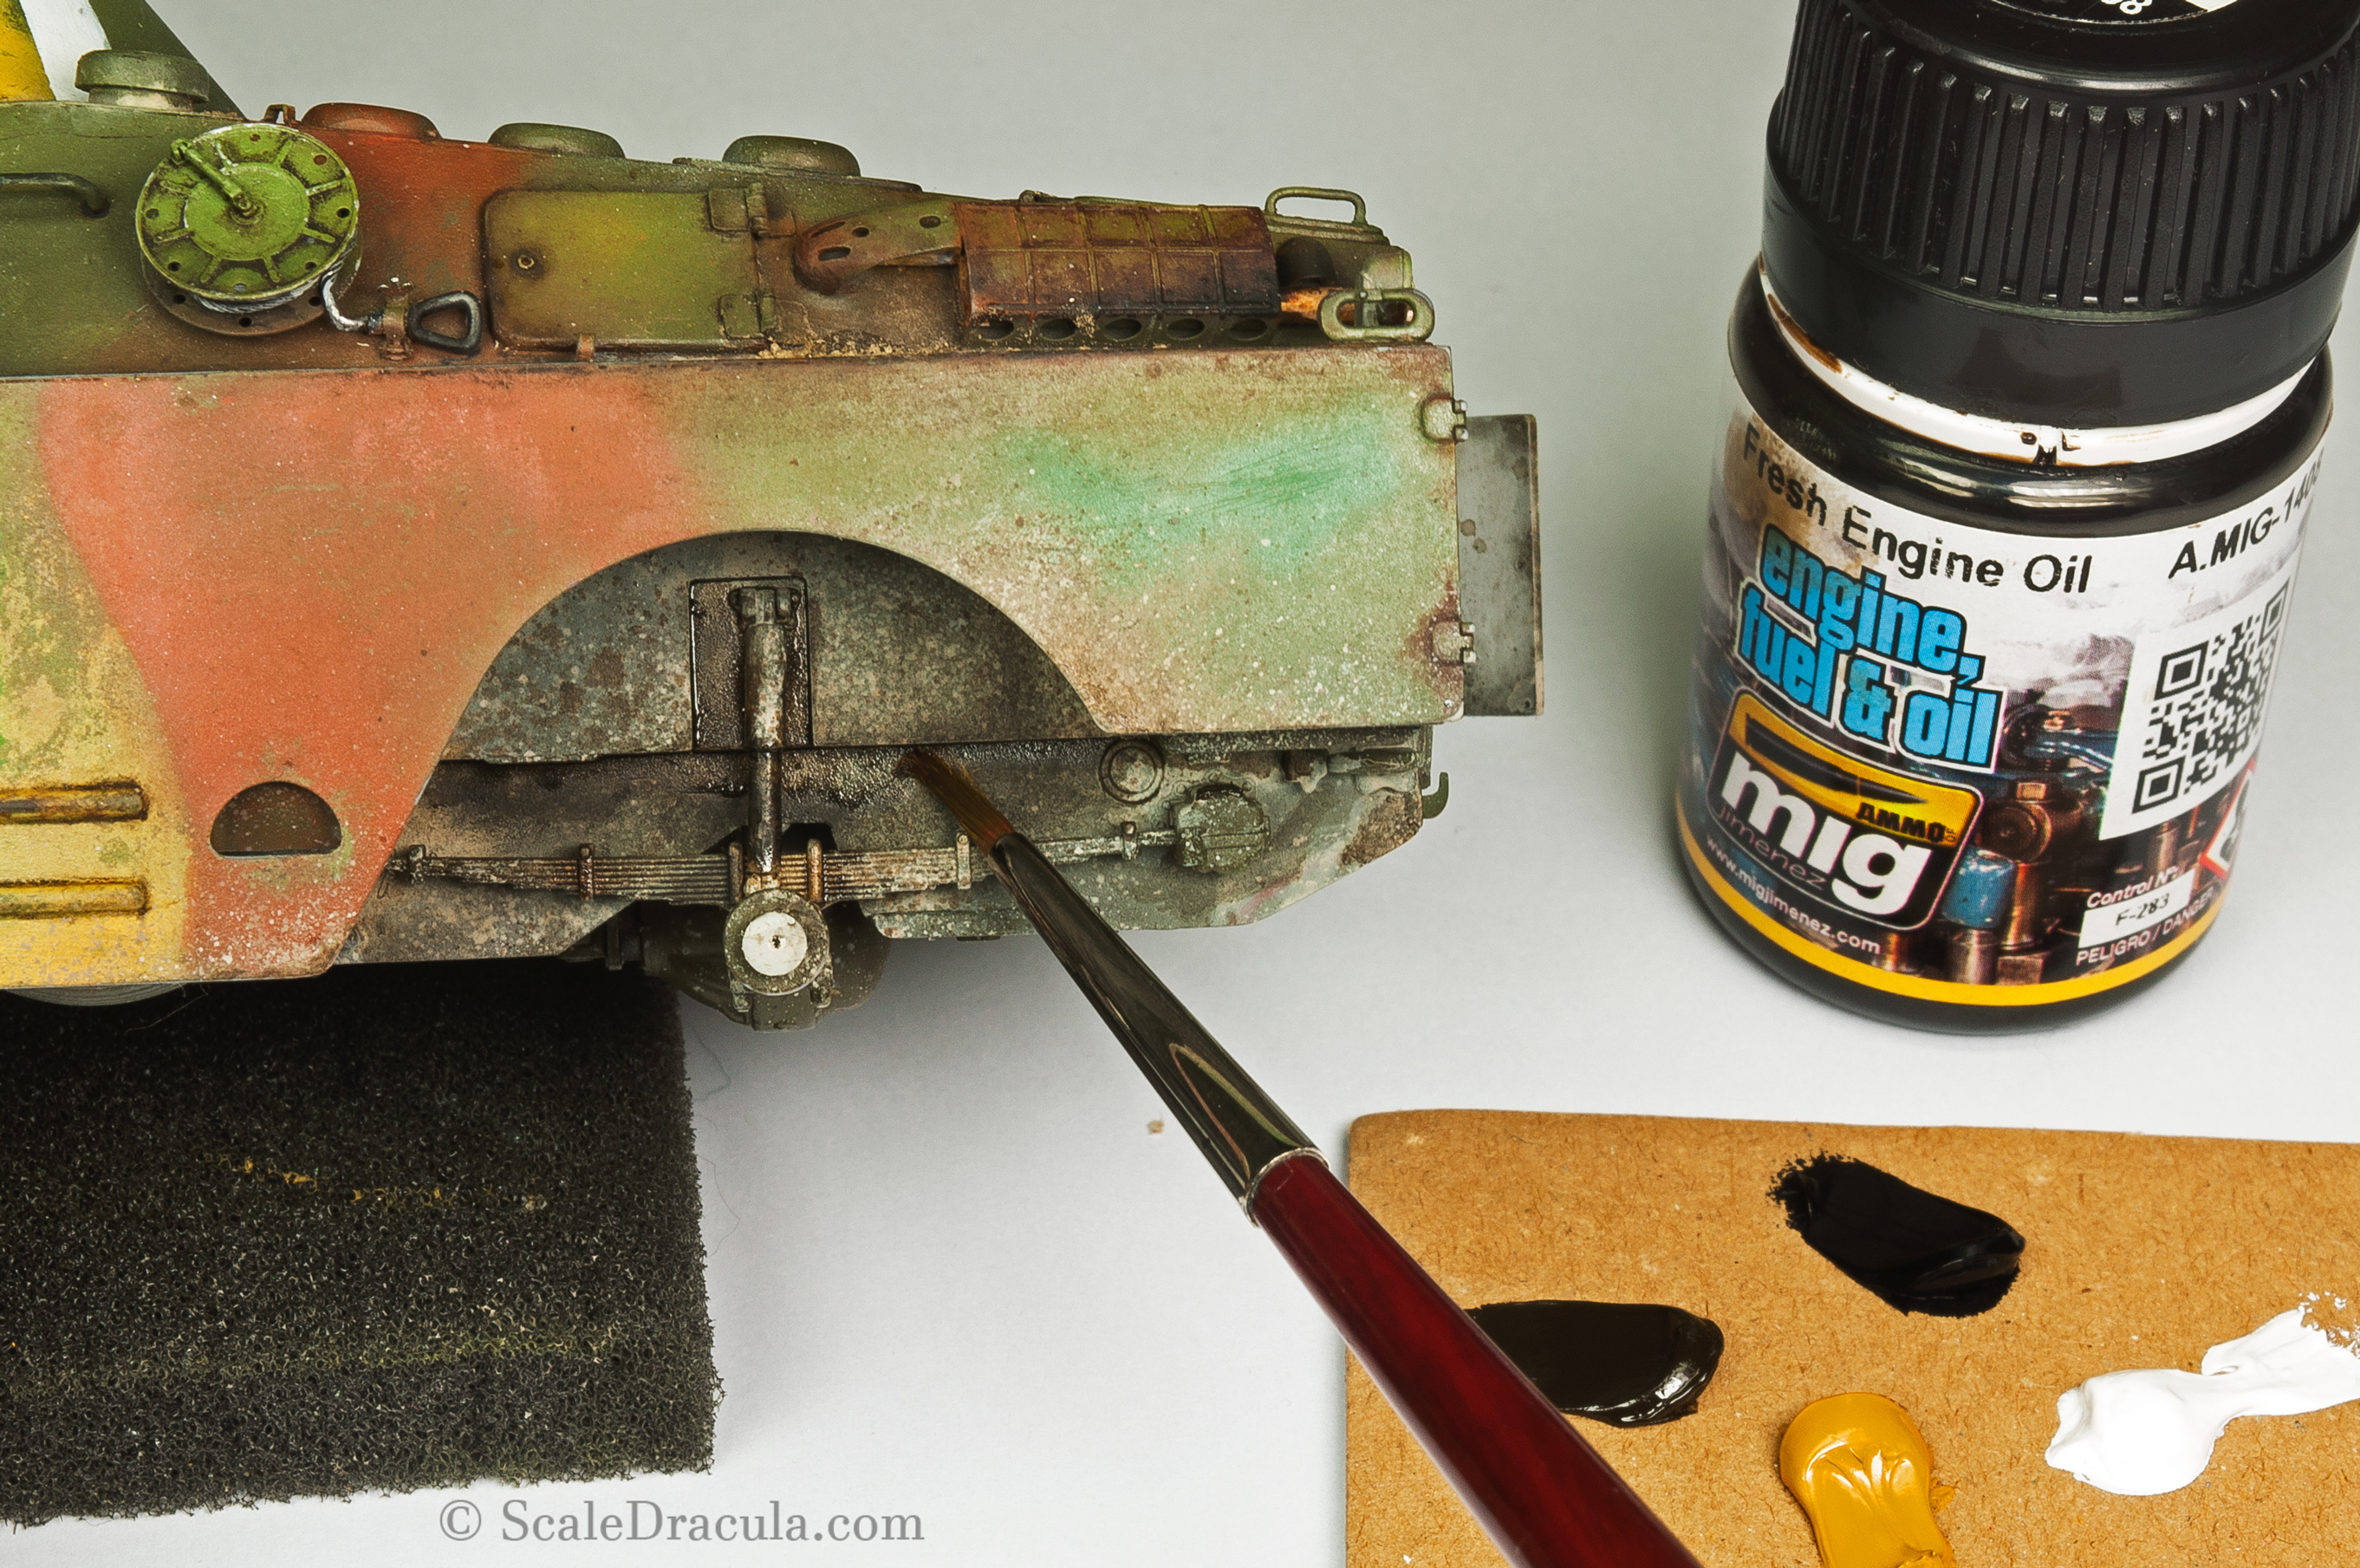 Fresh mud done with Ammo Fresh Engine Oil, BRDM-2 by Trumpeter